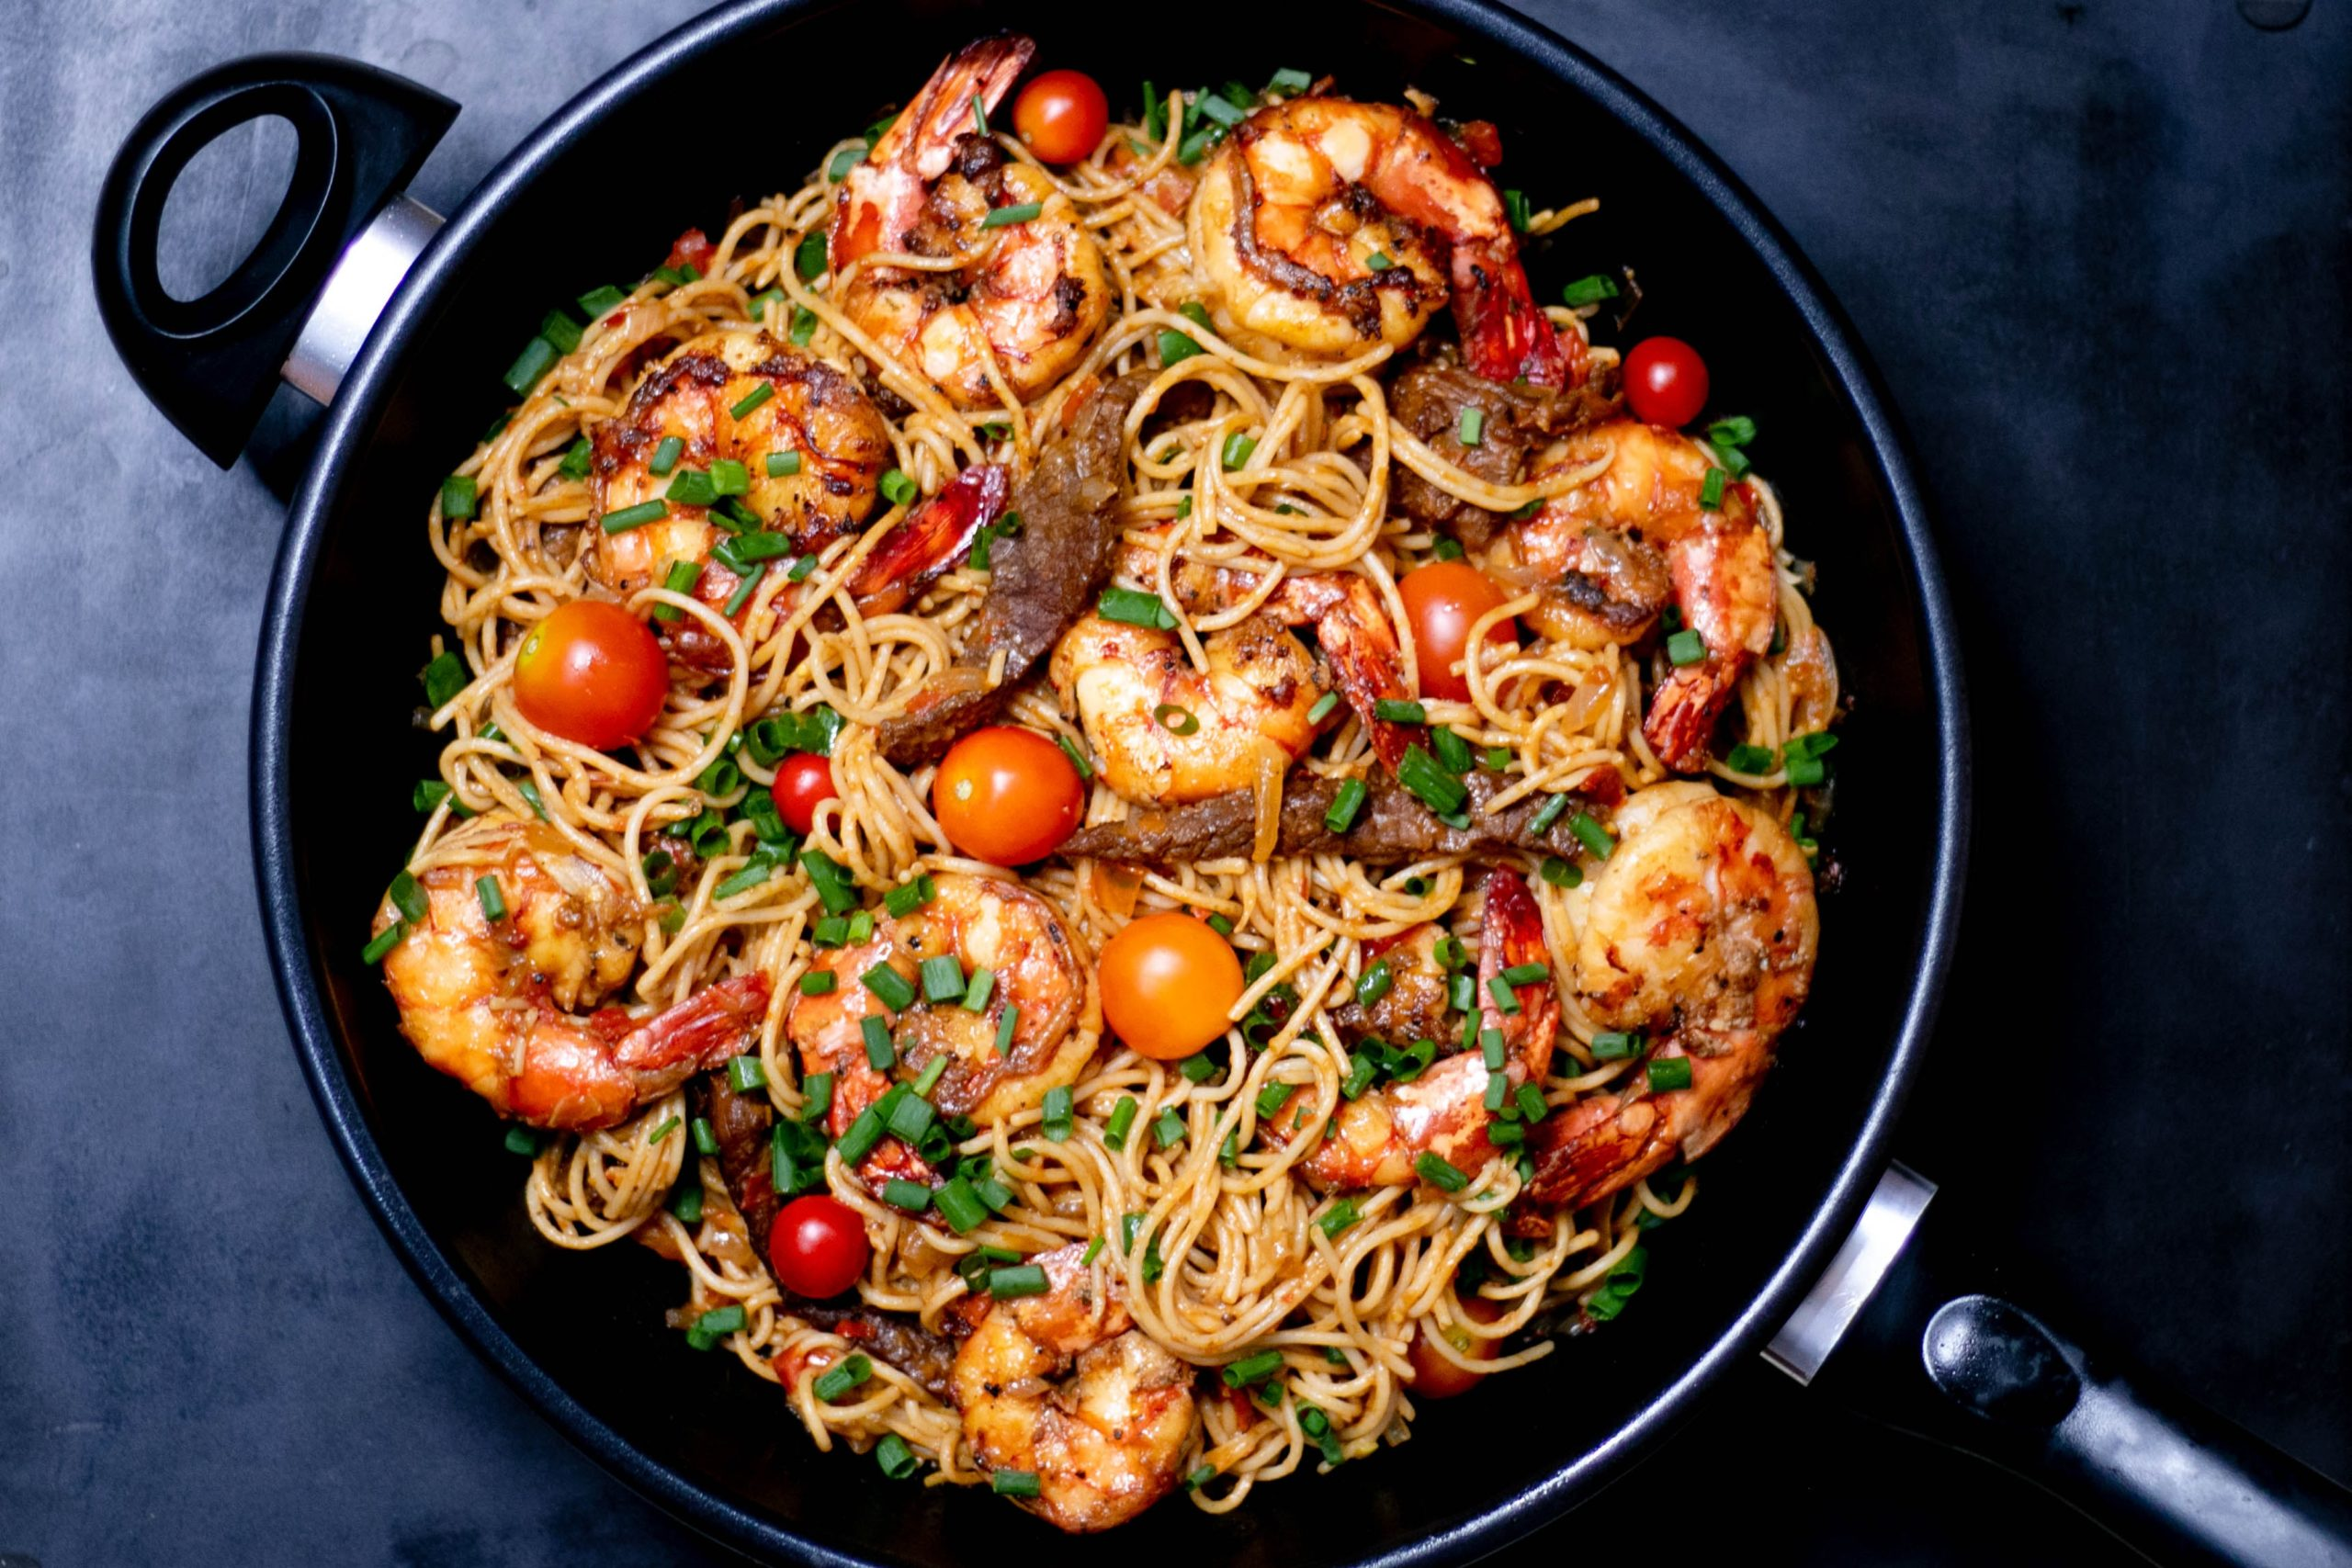 How to Cook Shrimp for Pasta